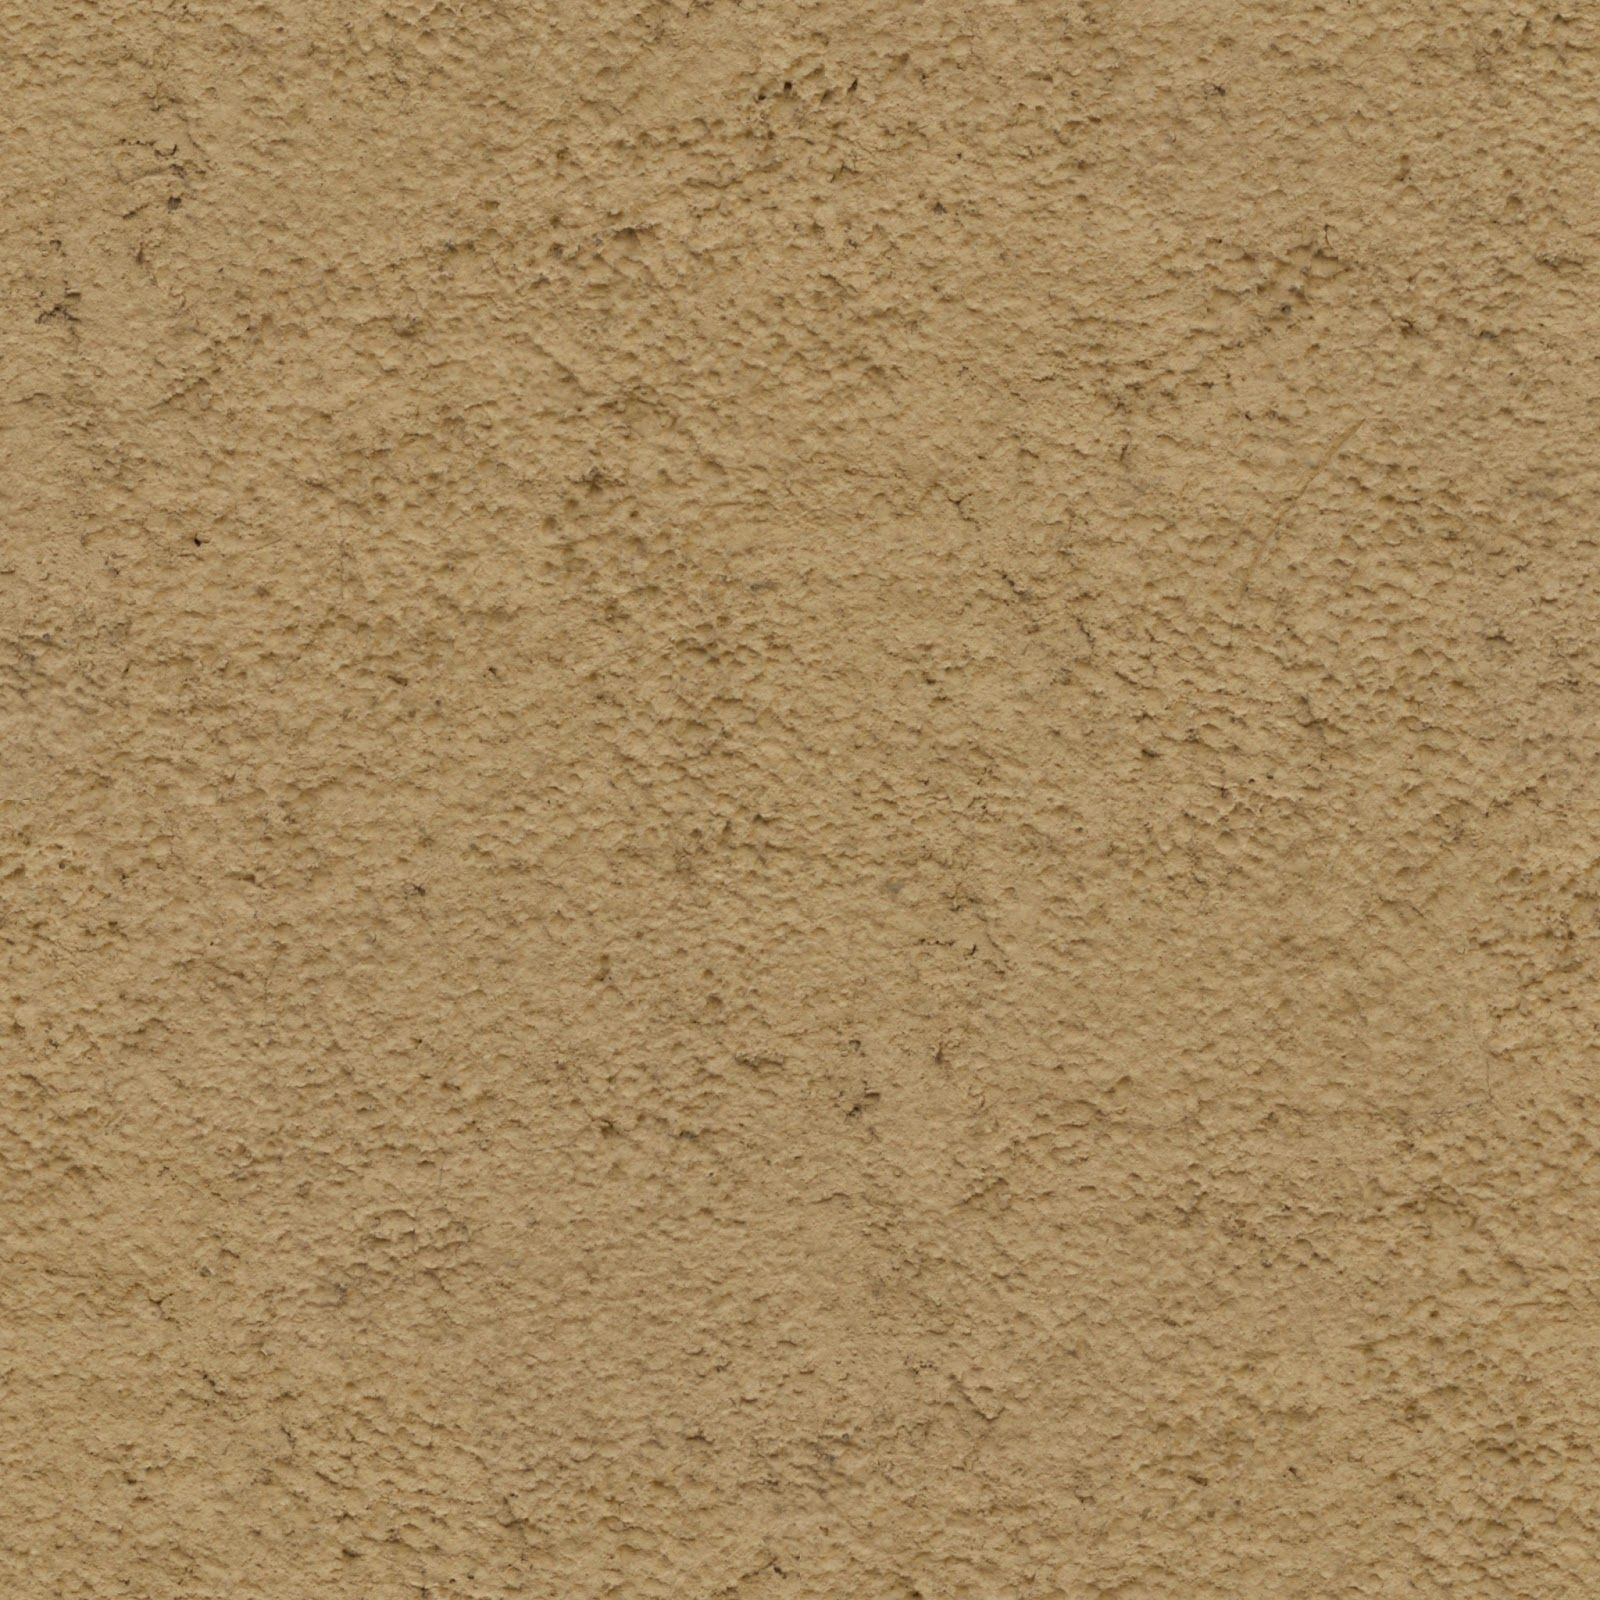 Pin By Jaime Aguilar On Stucco Texture: Stucco Dirty Rough Stucco Plaster Wall Paper Seamless